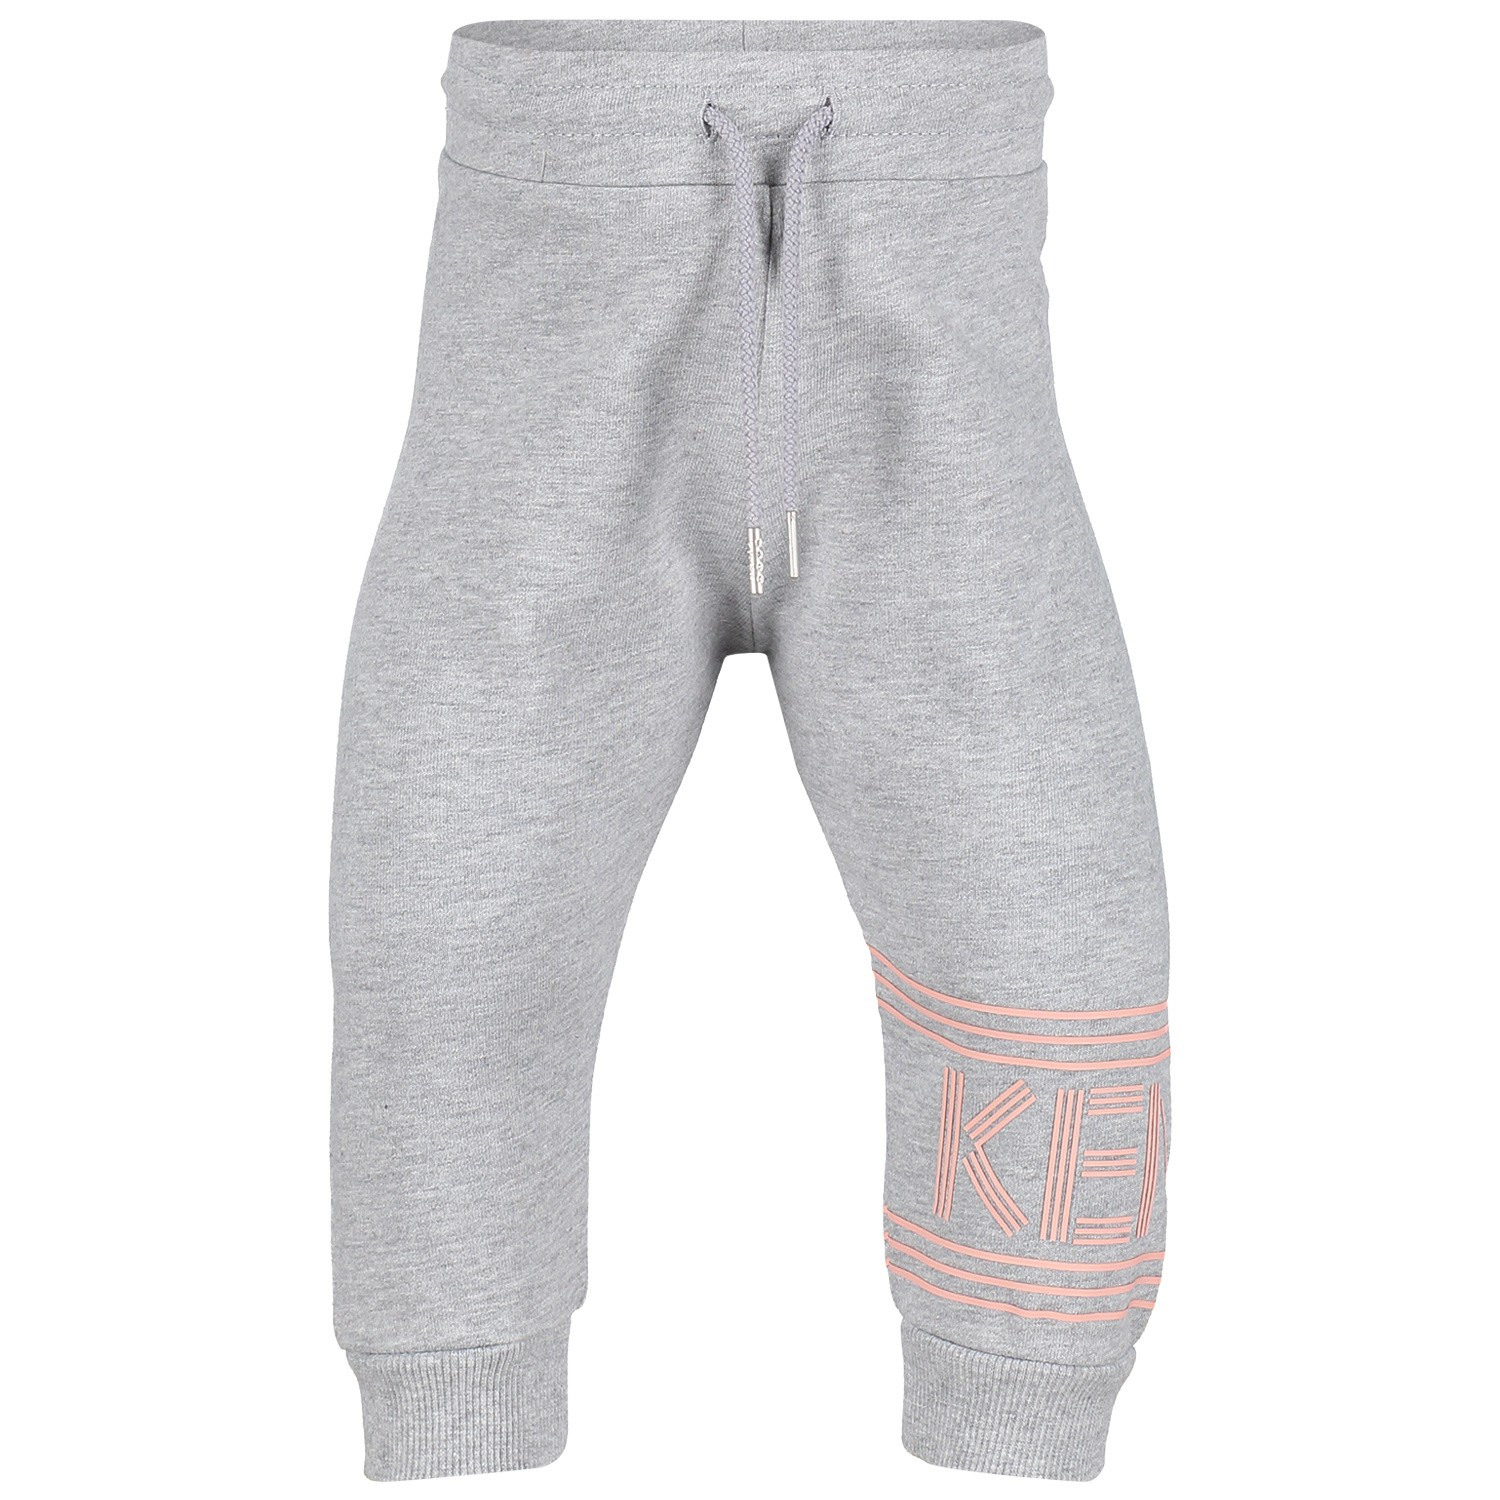 Picture of Kenzo KN23027 baby pants light gray